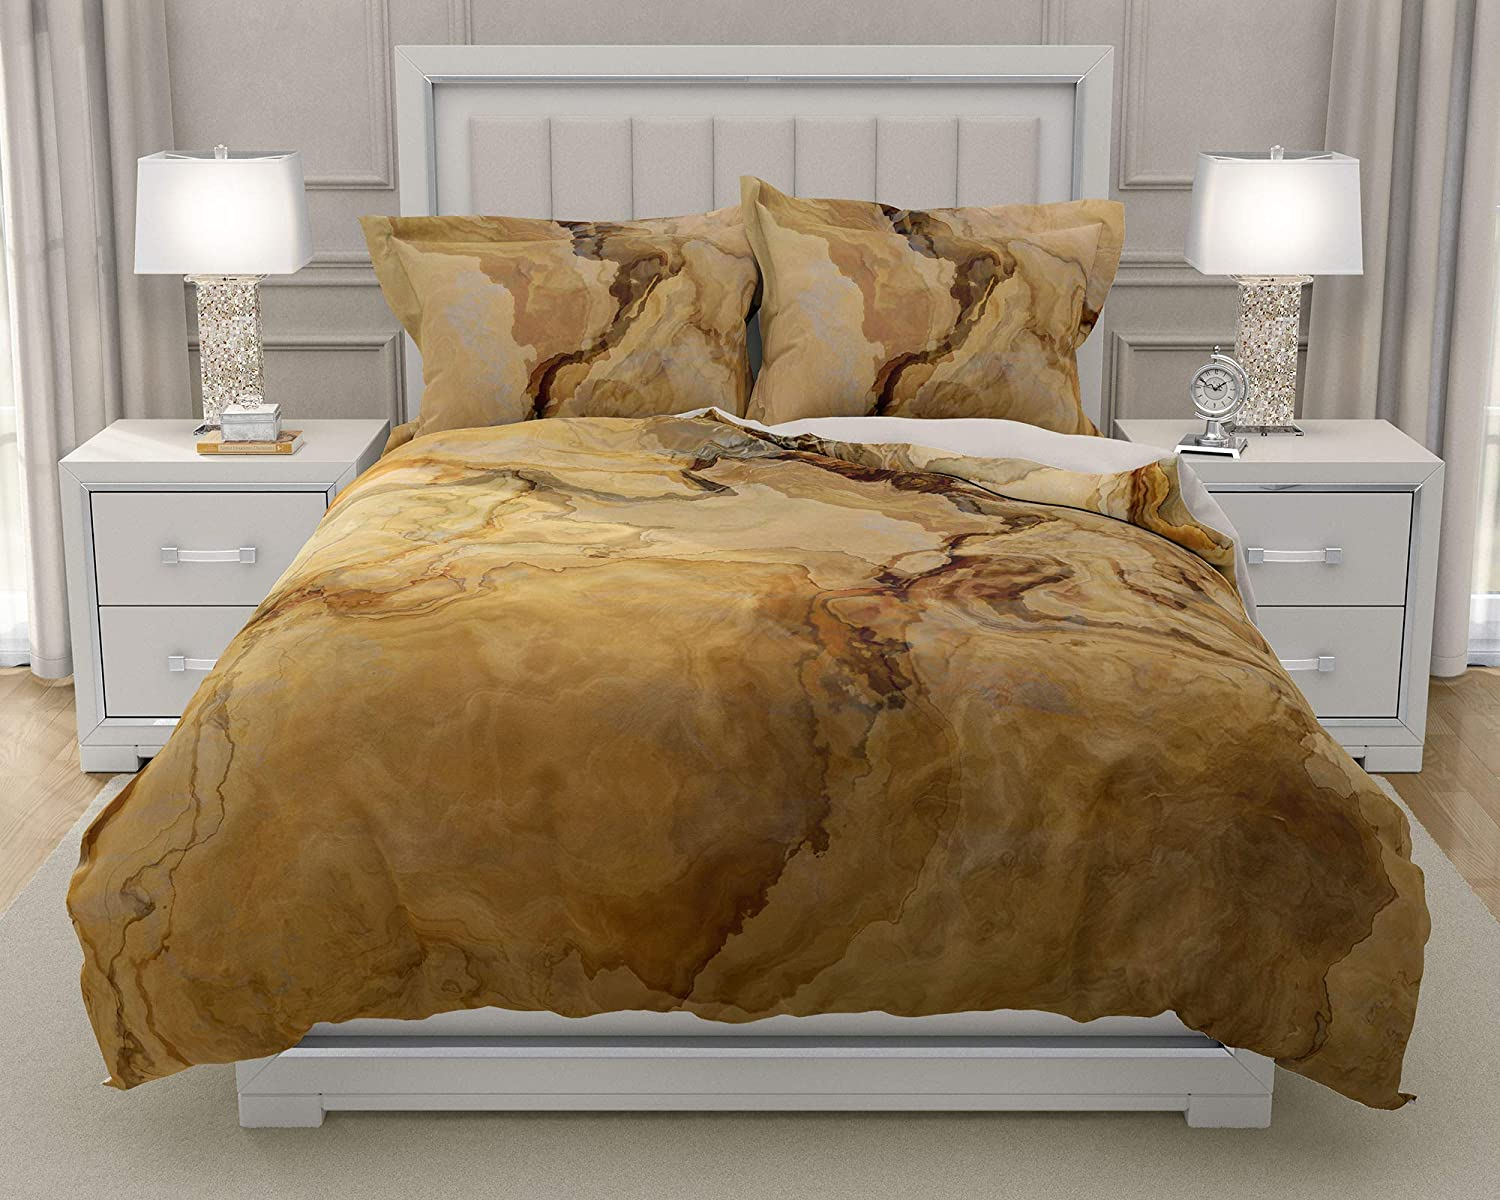 Image of King or Queen 3 pc Duvet Cover Set with abstract art, Earthbound